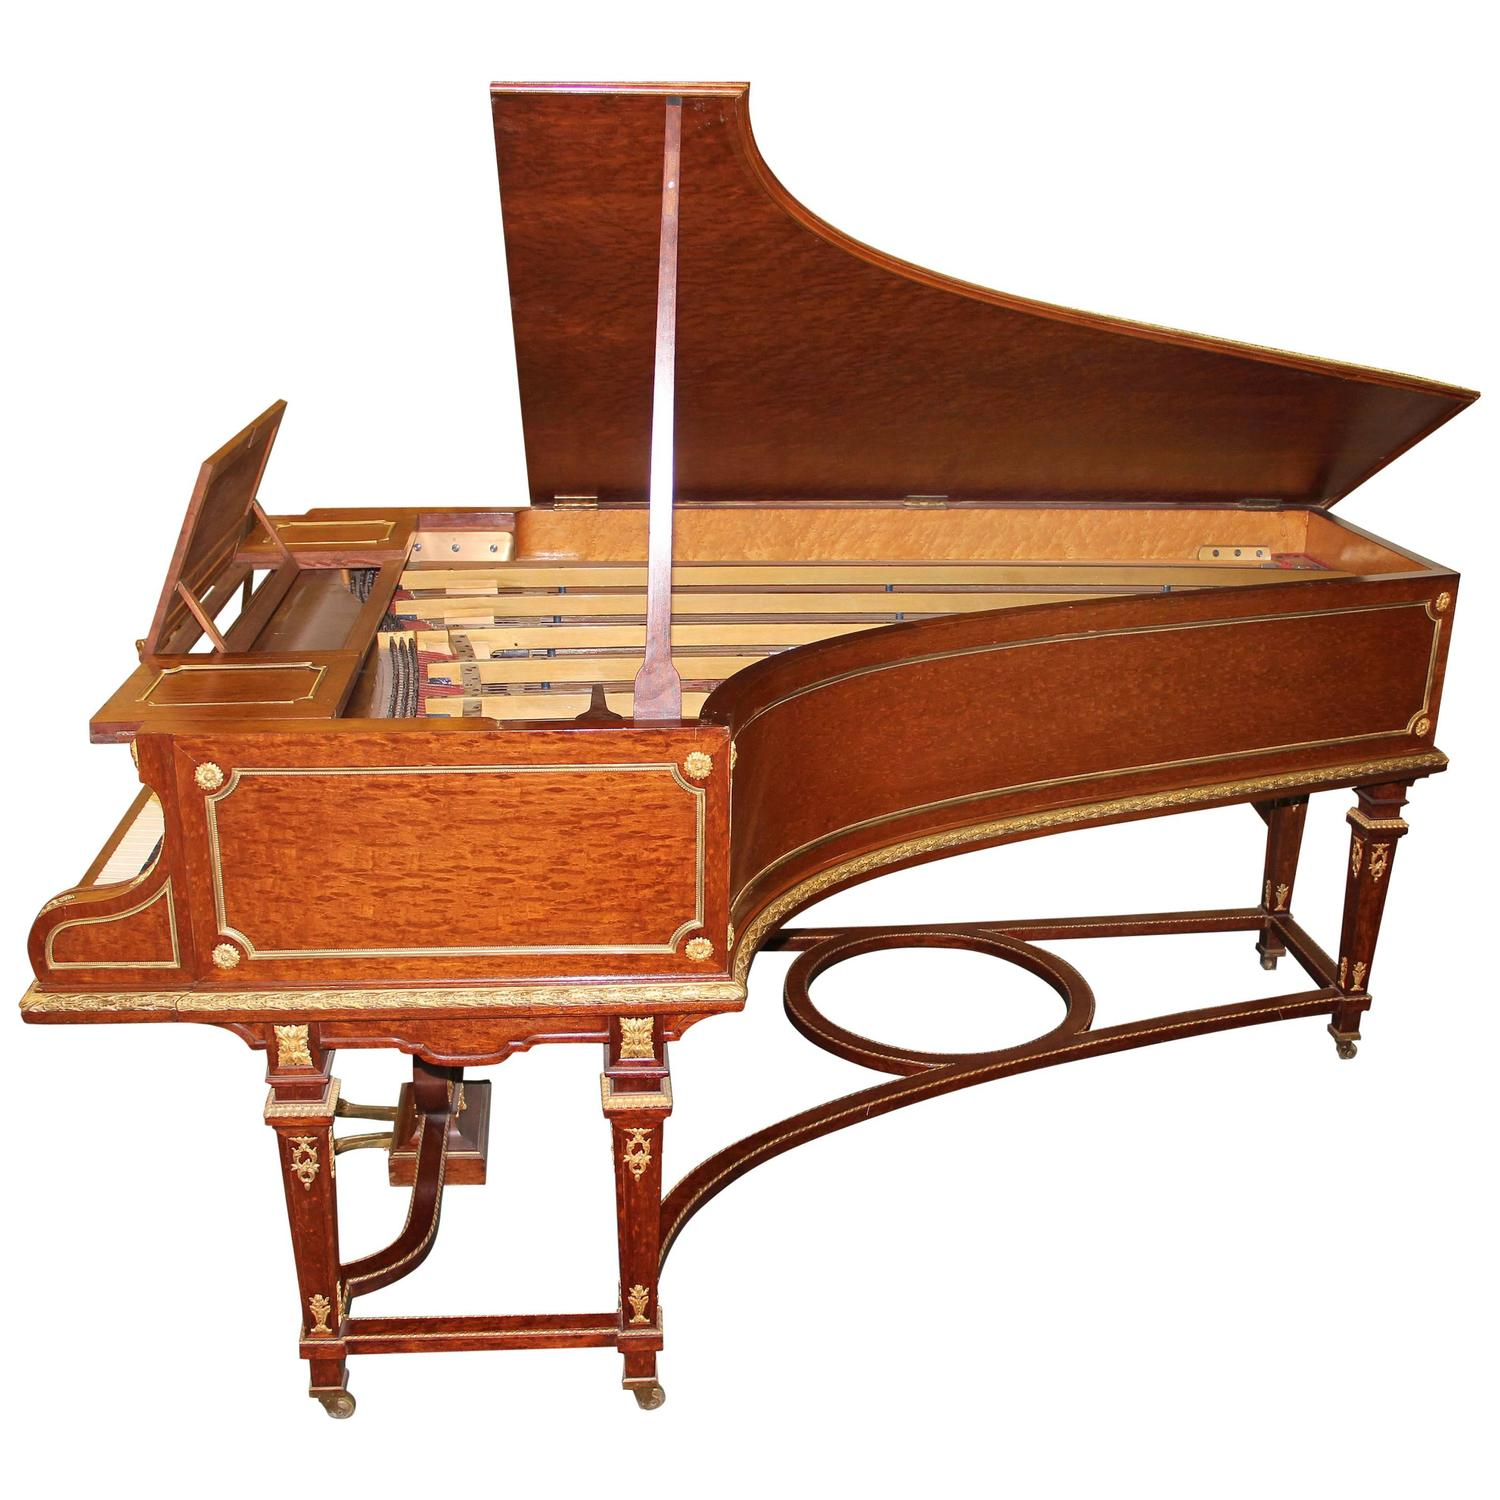 Turn of the century furniture - Wonderful Turn Of The Century Gilt Bronze Mounted Grand Erard Piano For Sale At 1stdibs